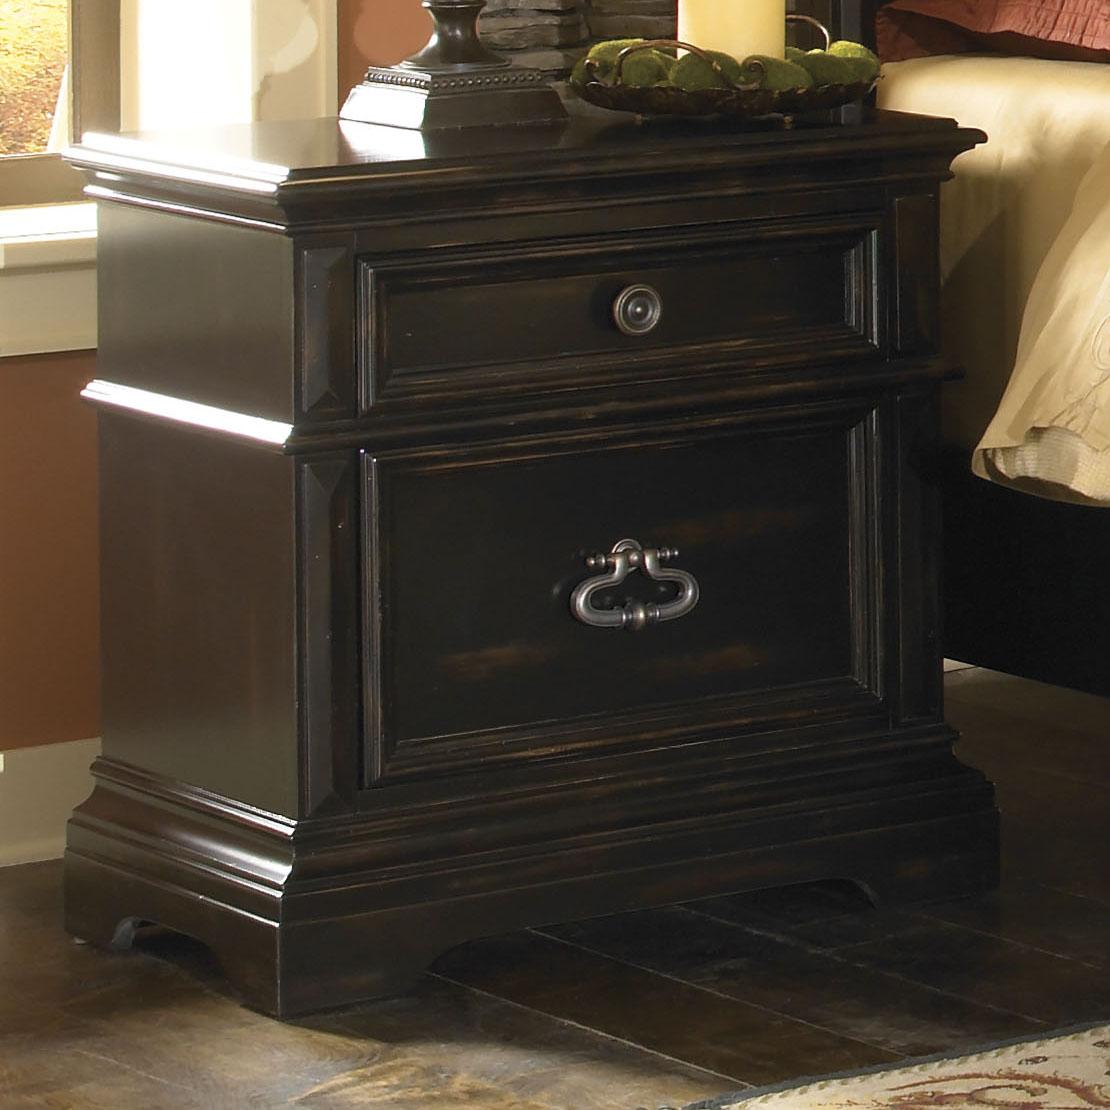 Pulaski Furniture Brookfield Brookfield Nightstand - Item Number: 993140